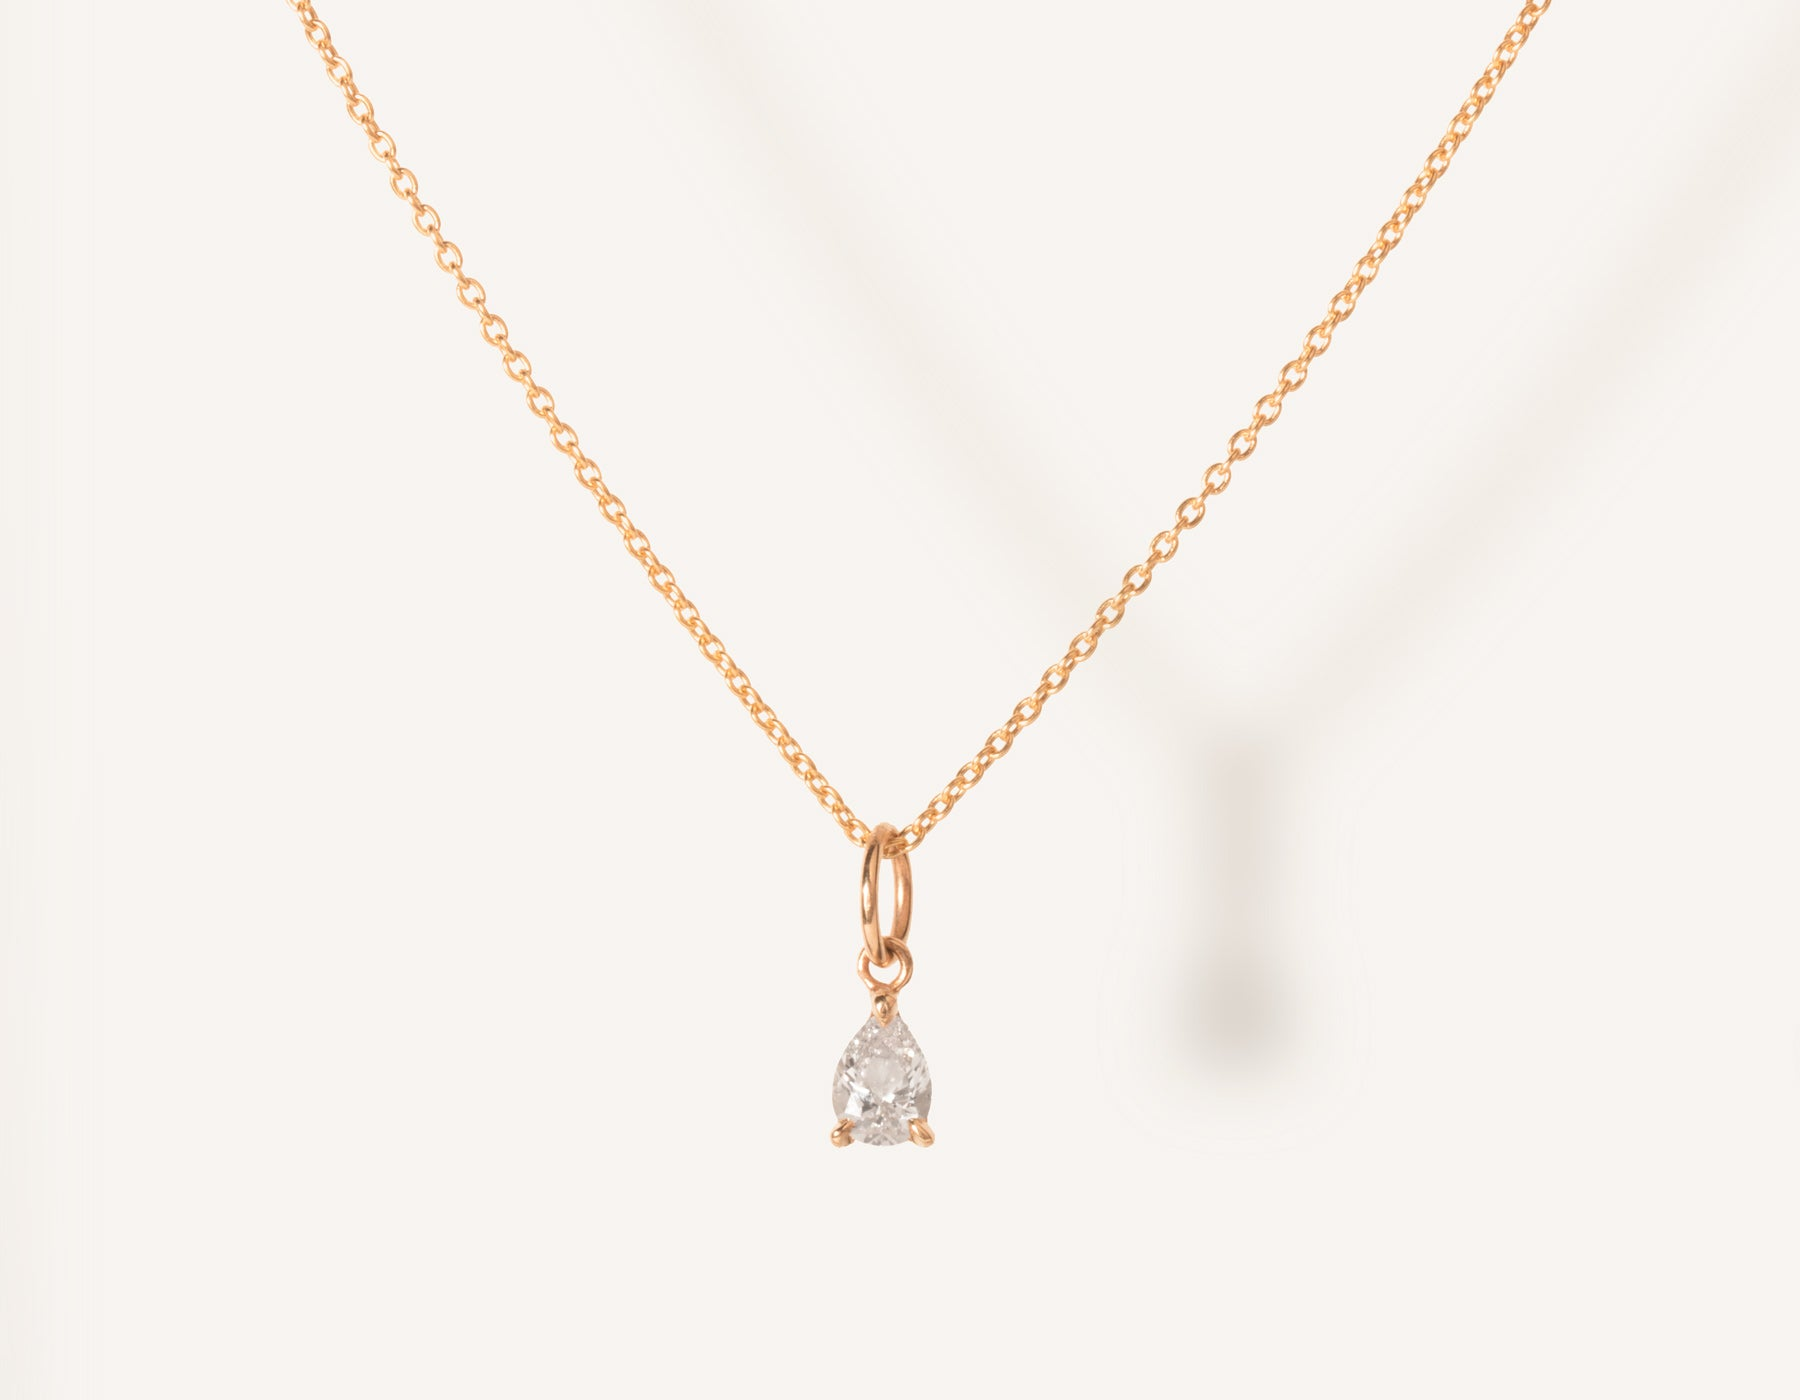 vrai & oro 14k solid gold dainty Pear Diamond Pendant Necklace on minimalist oval link chain, 14K Rose Gold